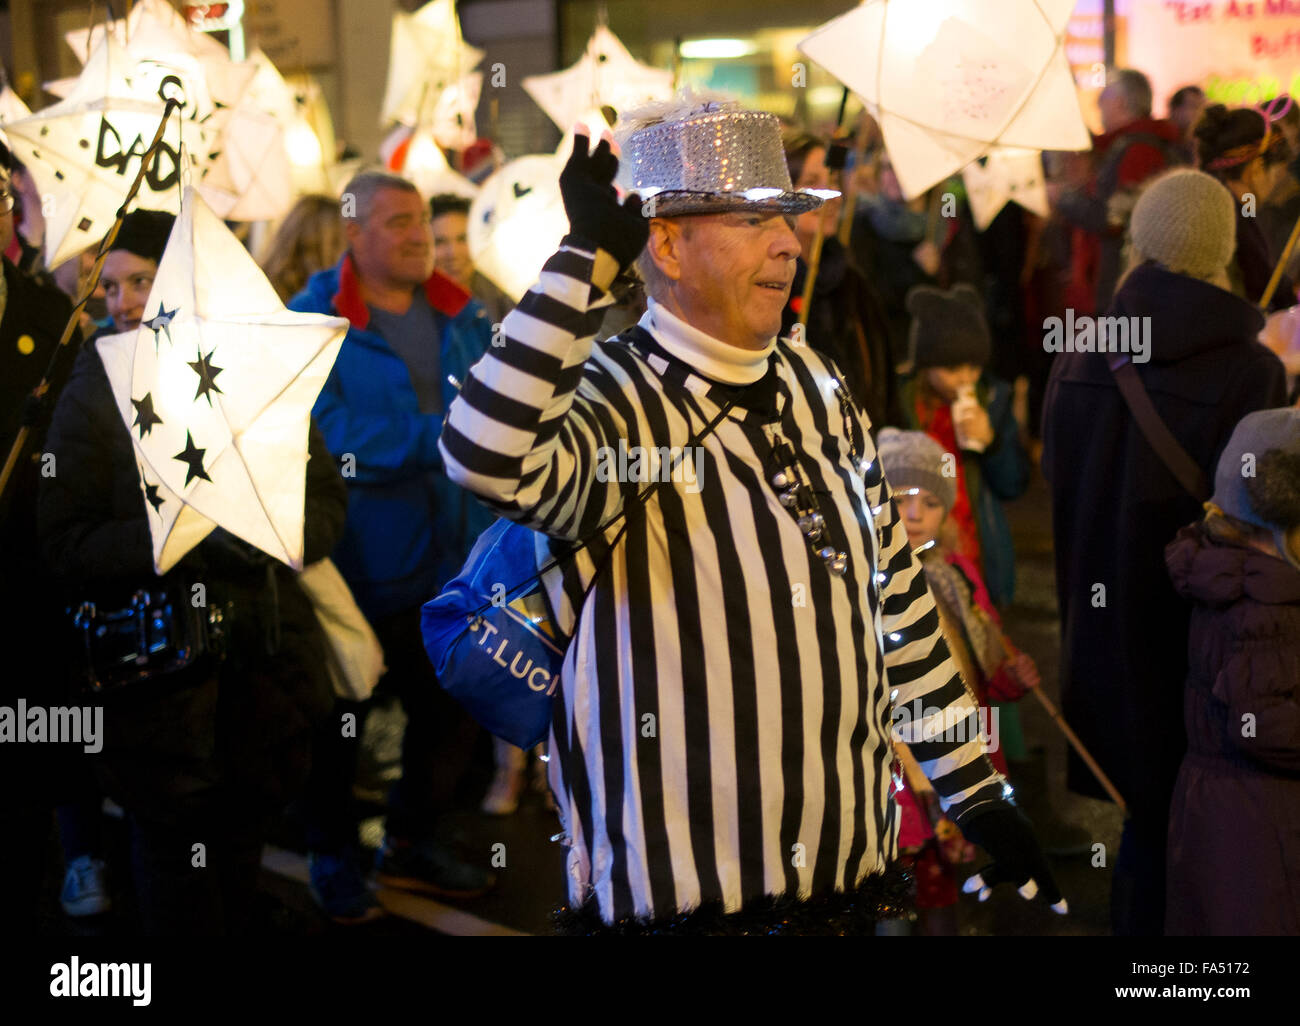 Brighton, UK. 21st December, 2015. Burning the Clocks is a community event created to mark the shortest day of the - Stock Image